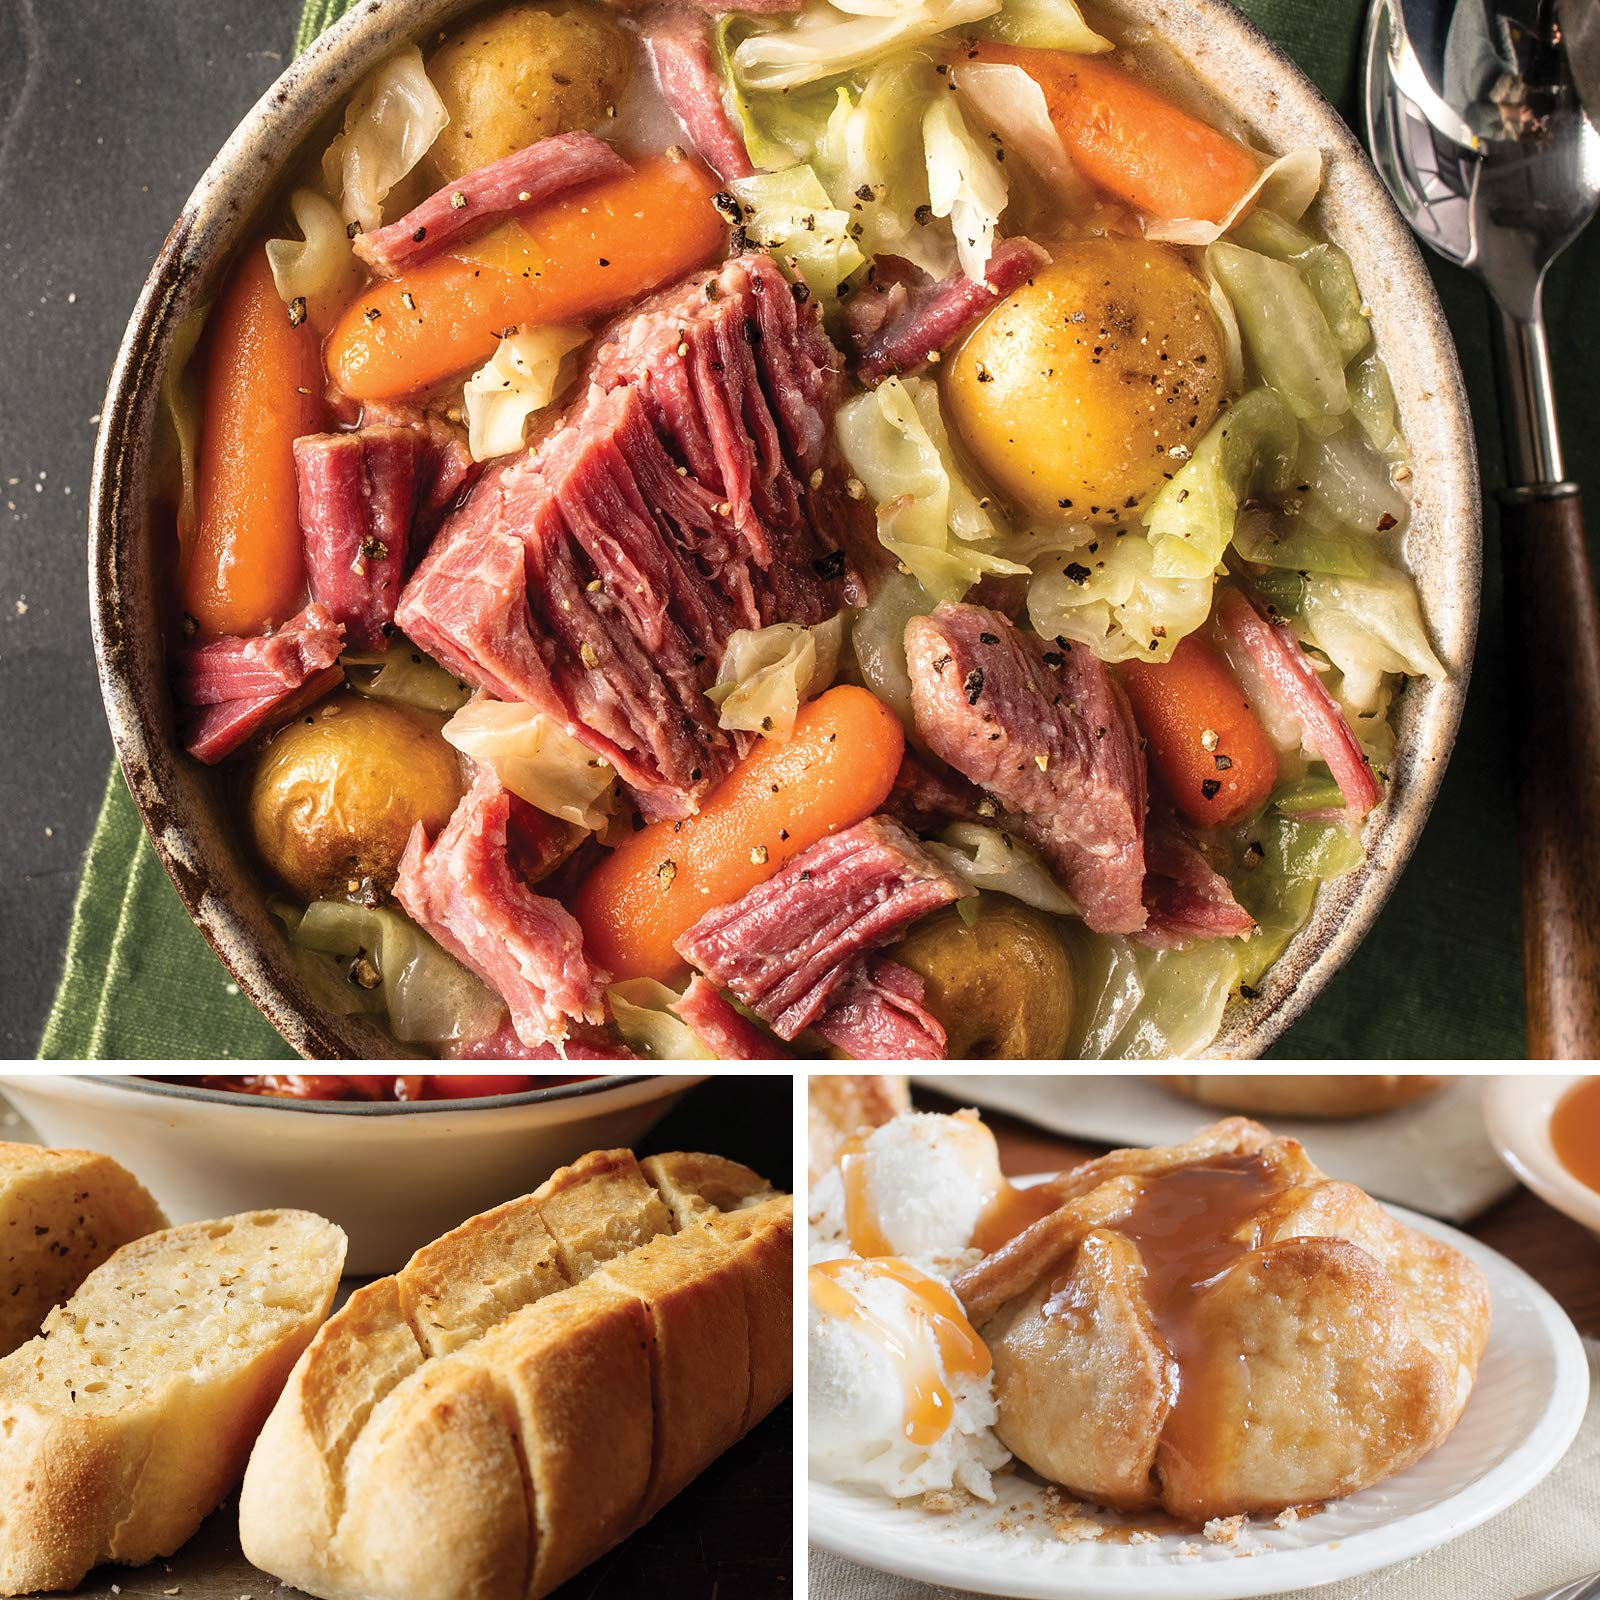 Omaha Steaks Simple St. Paddy's Dinner (9-Piece with Corned Beef and Cabbage Slow Cooker Meal, Mini-Baguettes with Garlic Butter, and Individual Caramel Apple Tartlets)